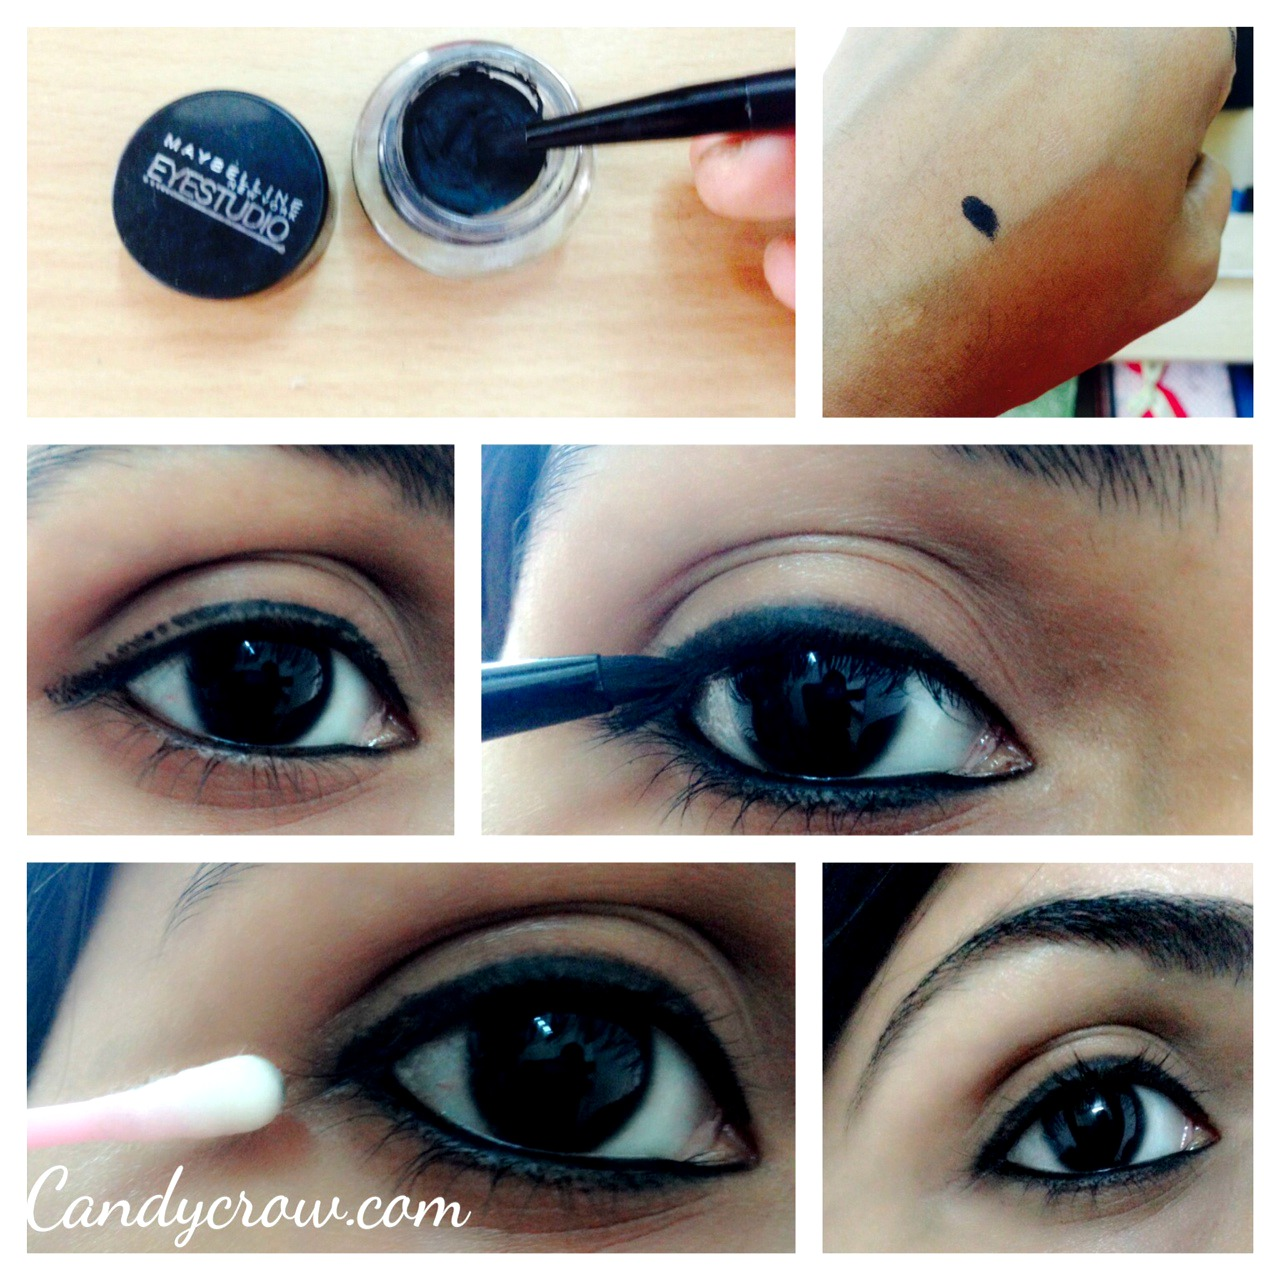 Step 1 Before Applying Step 2 Prepare The Applicator How To Apply Eyeliner  Step By Step